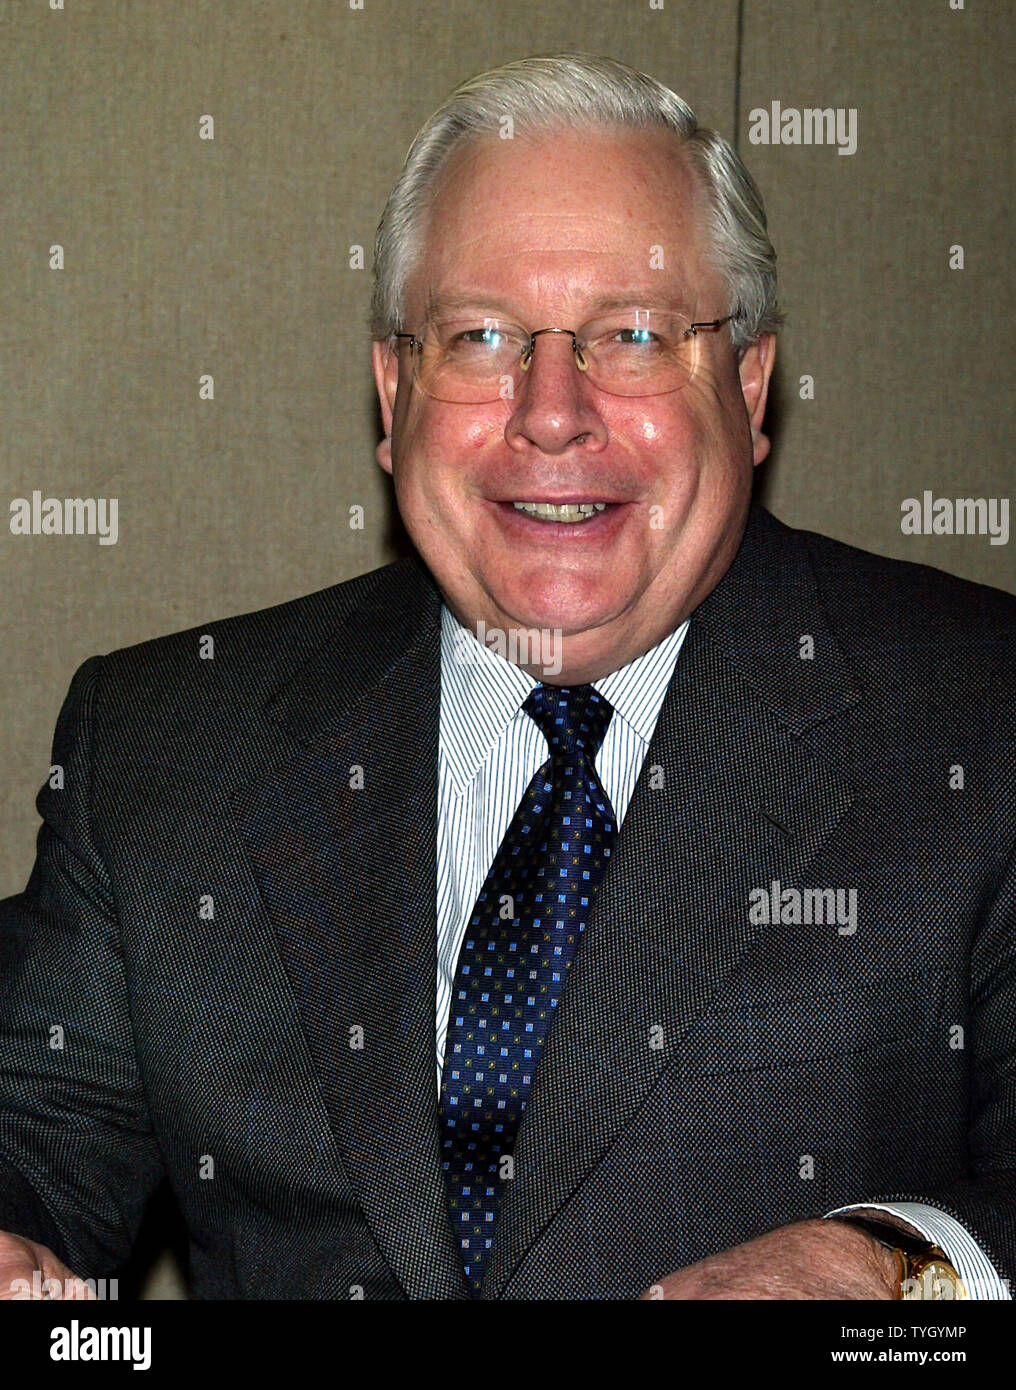 Mr. C. Robert Henrikson, President and COO of MetLife, Inc. attends the 17th Annual Lewis Hine Awards Ceremony on January 31, 2005 in New York, after his  company announced  that they will acquire Travelers Life and Annuity from Citigroup Inc. for $11.5 billion dollars in cash and stock in a deal that will make the company the largest individual life insurer in North America.  The deal should be finalized by the summer..  (UPI Photo/Laura Cavanaugh) - Stock Image